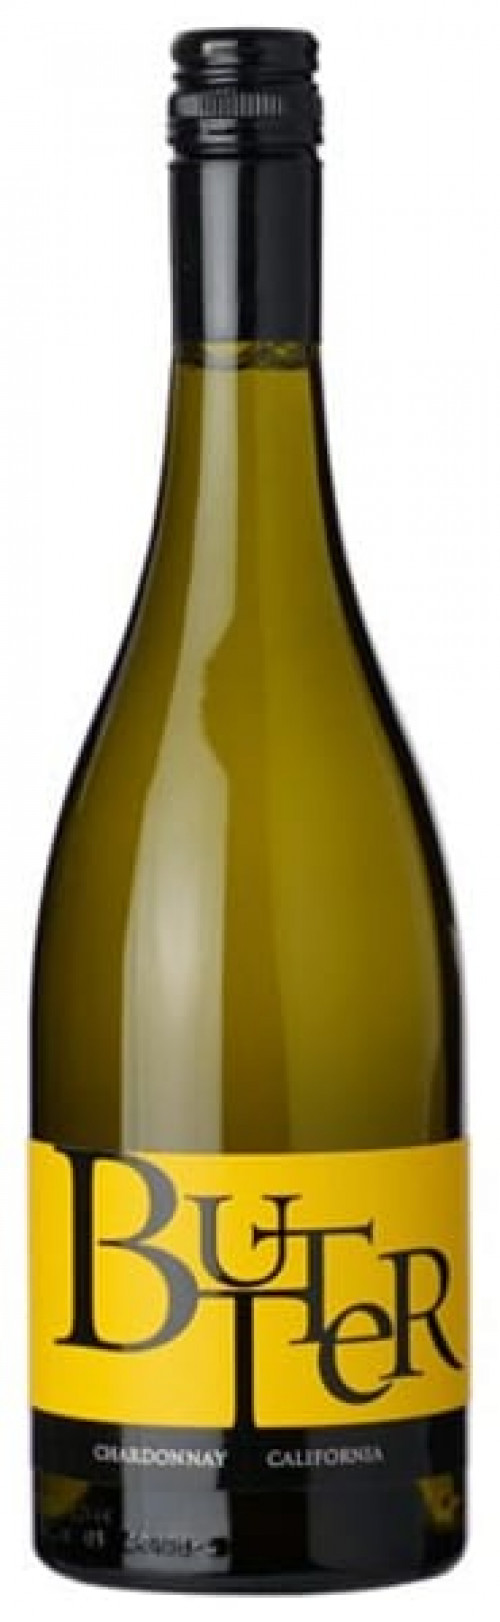 2017 Butter Chardonnay 750ml